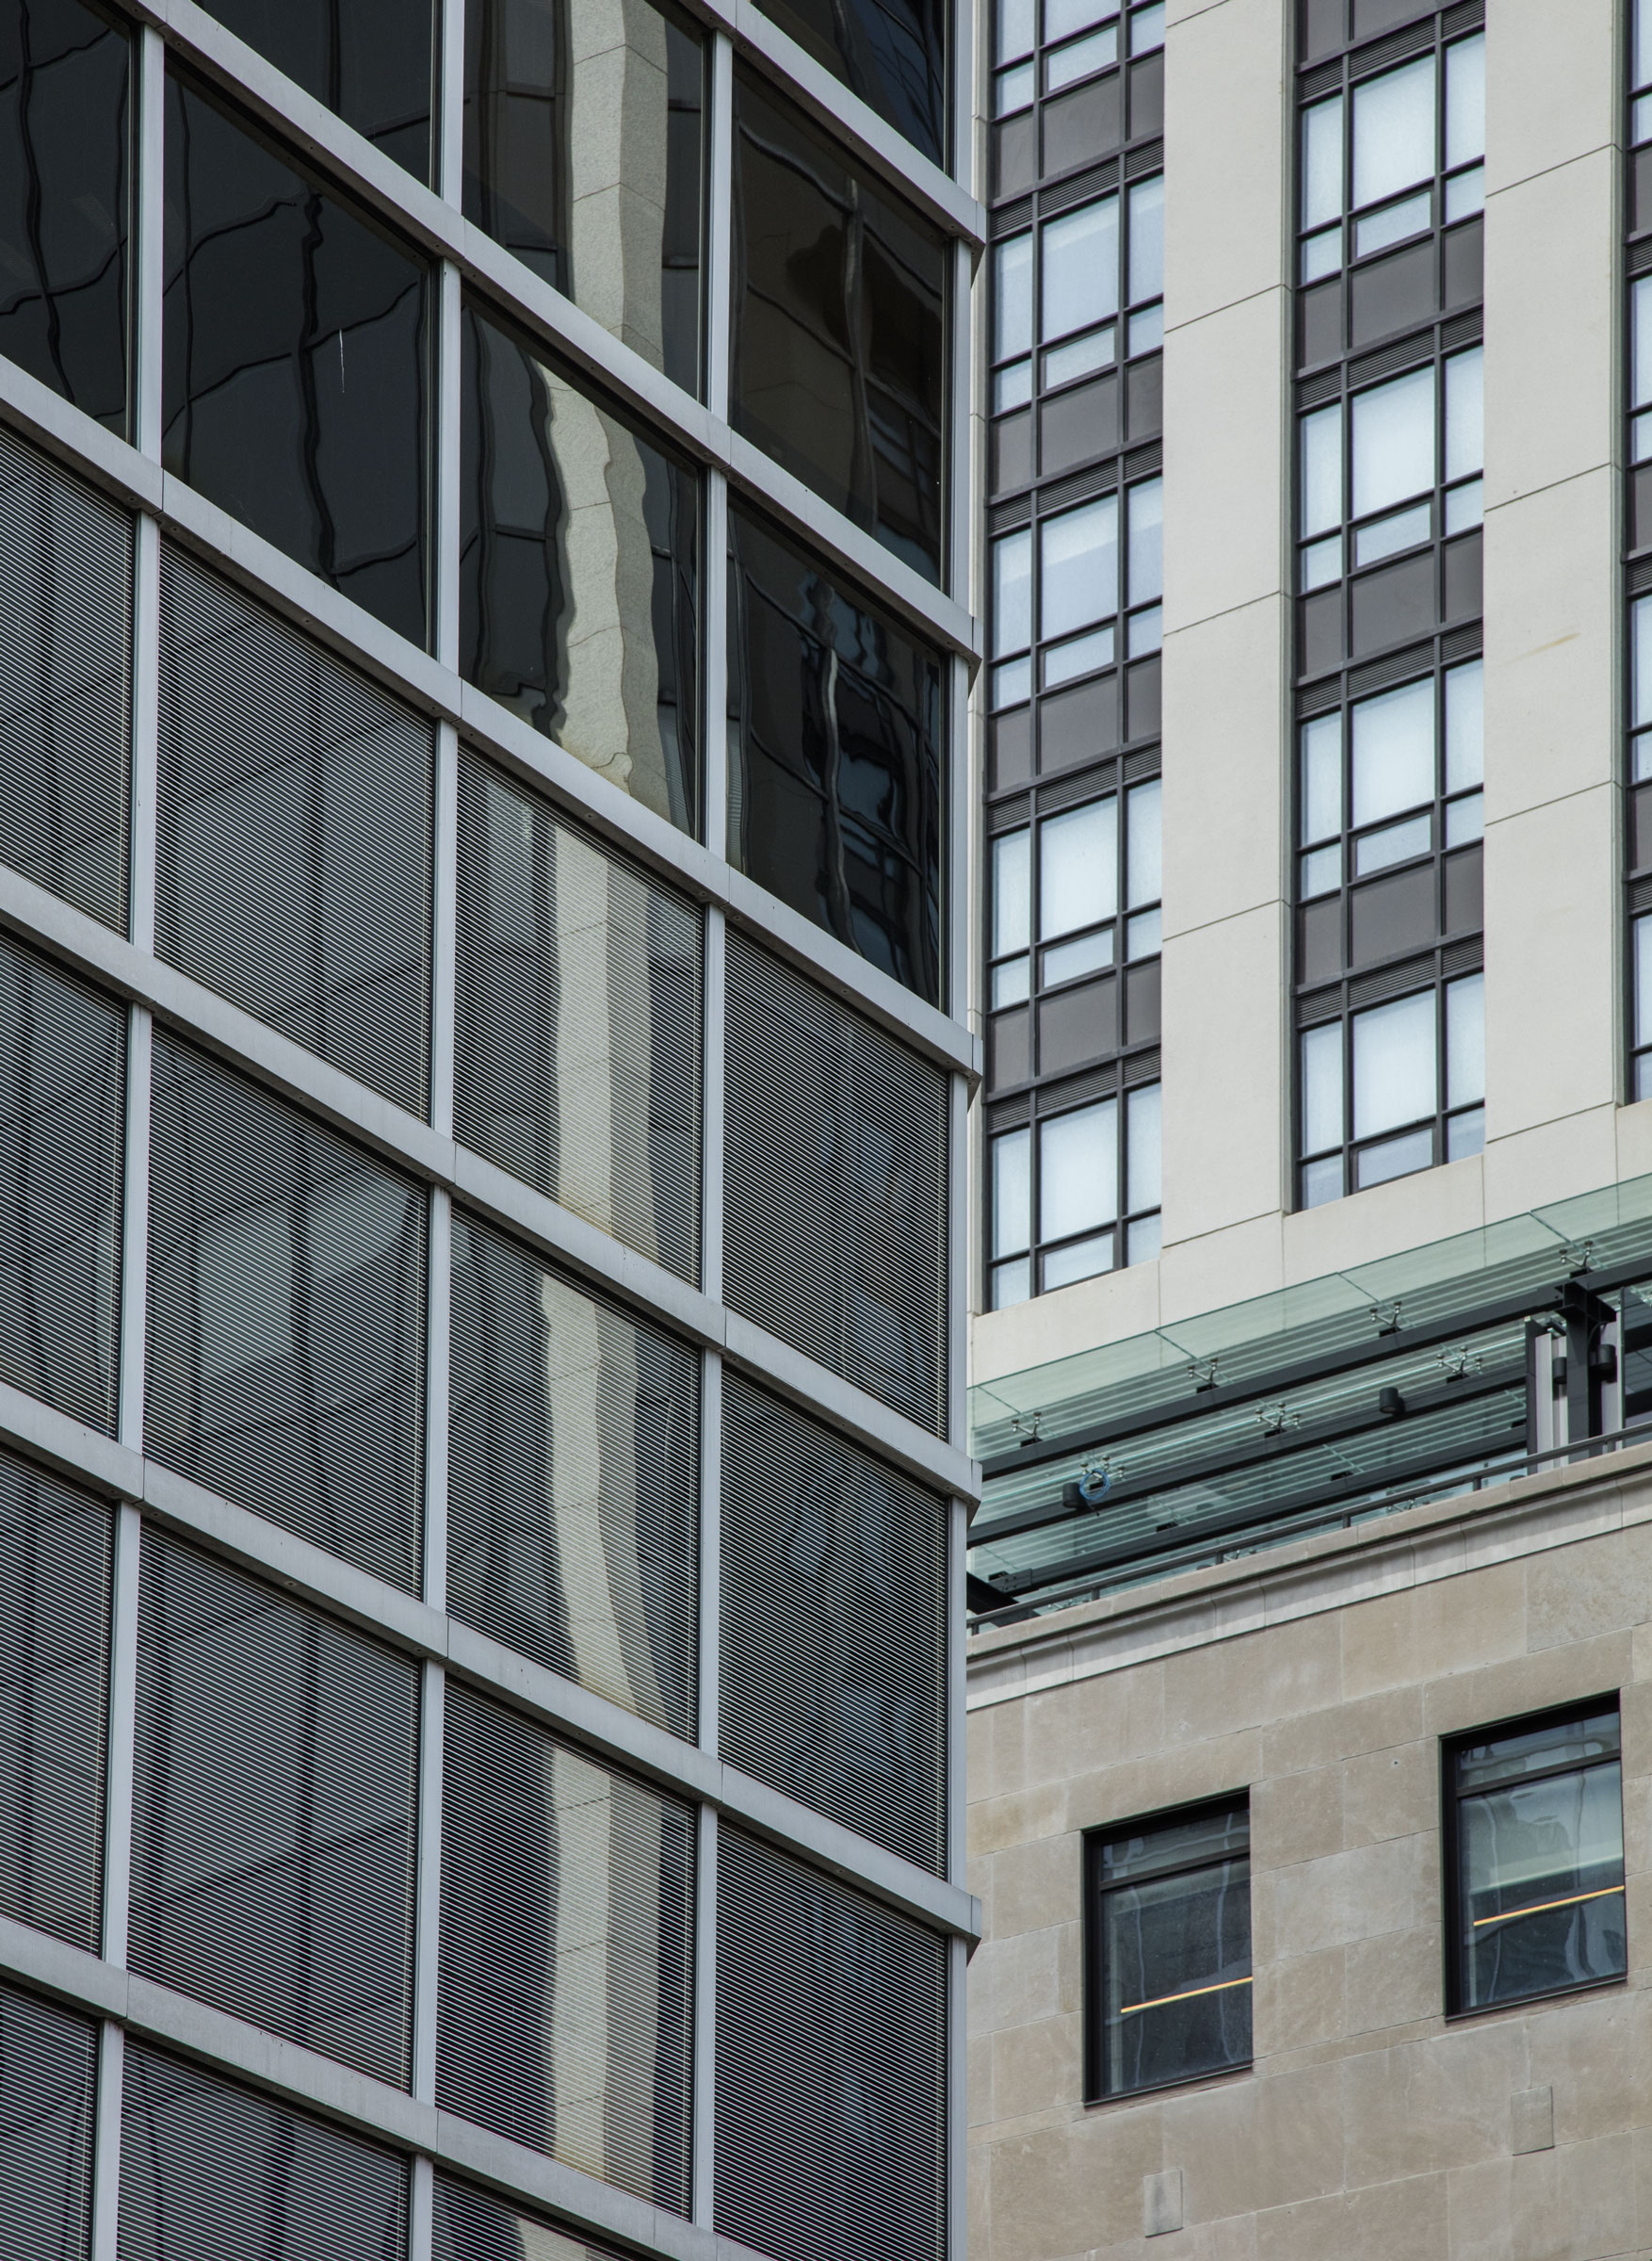 The etchings on the windows of this building in downtown Toronto resemble Venetian blinds and make the reflective surface visible to birds. Richard Barnes